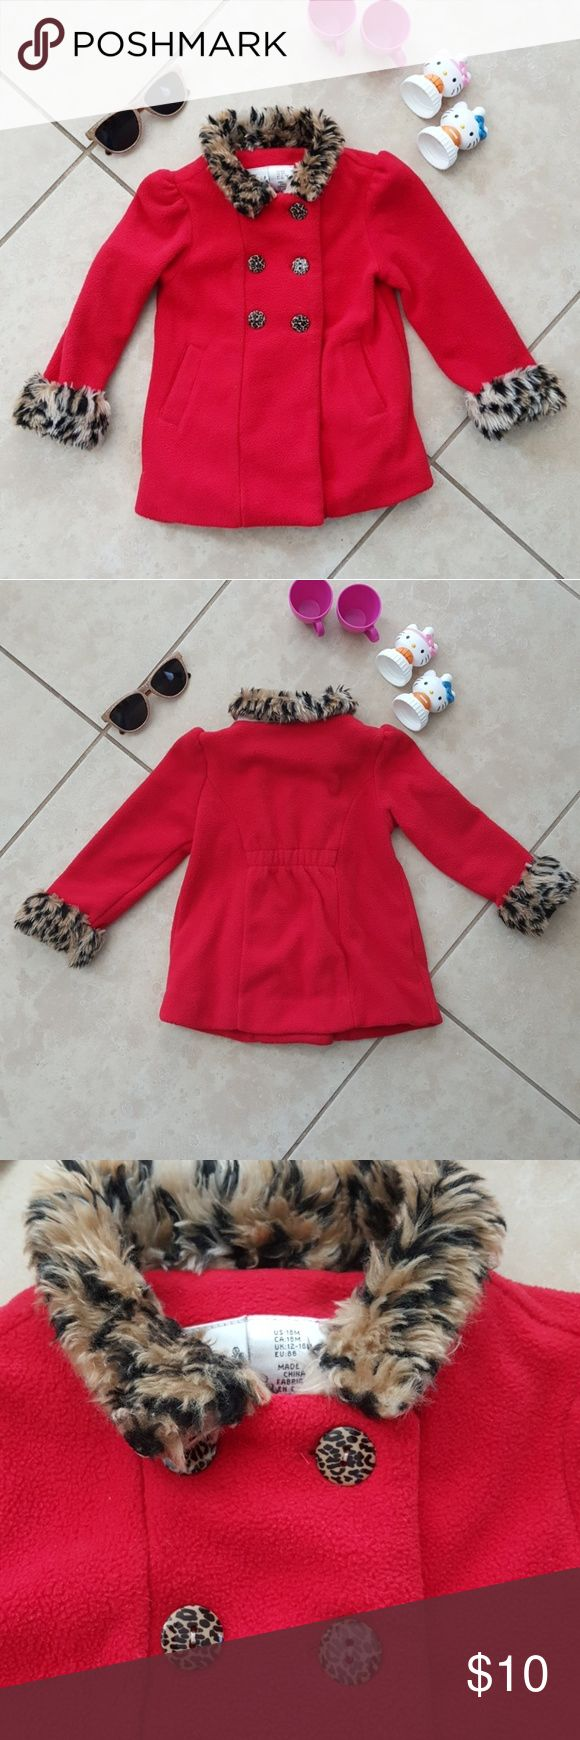 Maggie & Zoe Red Pea Coat Jacket Faux Fur 18M Size 18 months.  Girls Maggie & Zoe Red Jacket Faux Fur.  Show signs of wear.  Color is red (showing slightly brighter in the photos) with animal print faux fur. 100% polyester.  Jacket not lined.  Pockets on each side.  Please see last photo for fabric content and care instructions. Please let me know if you have any questions. Maggie & Zoe Jackets & Coats Pea Coats